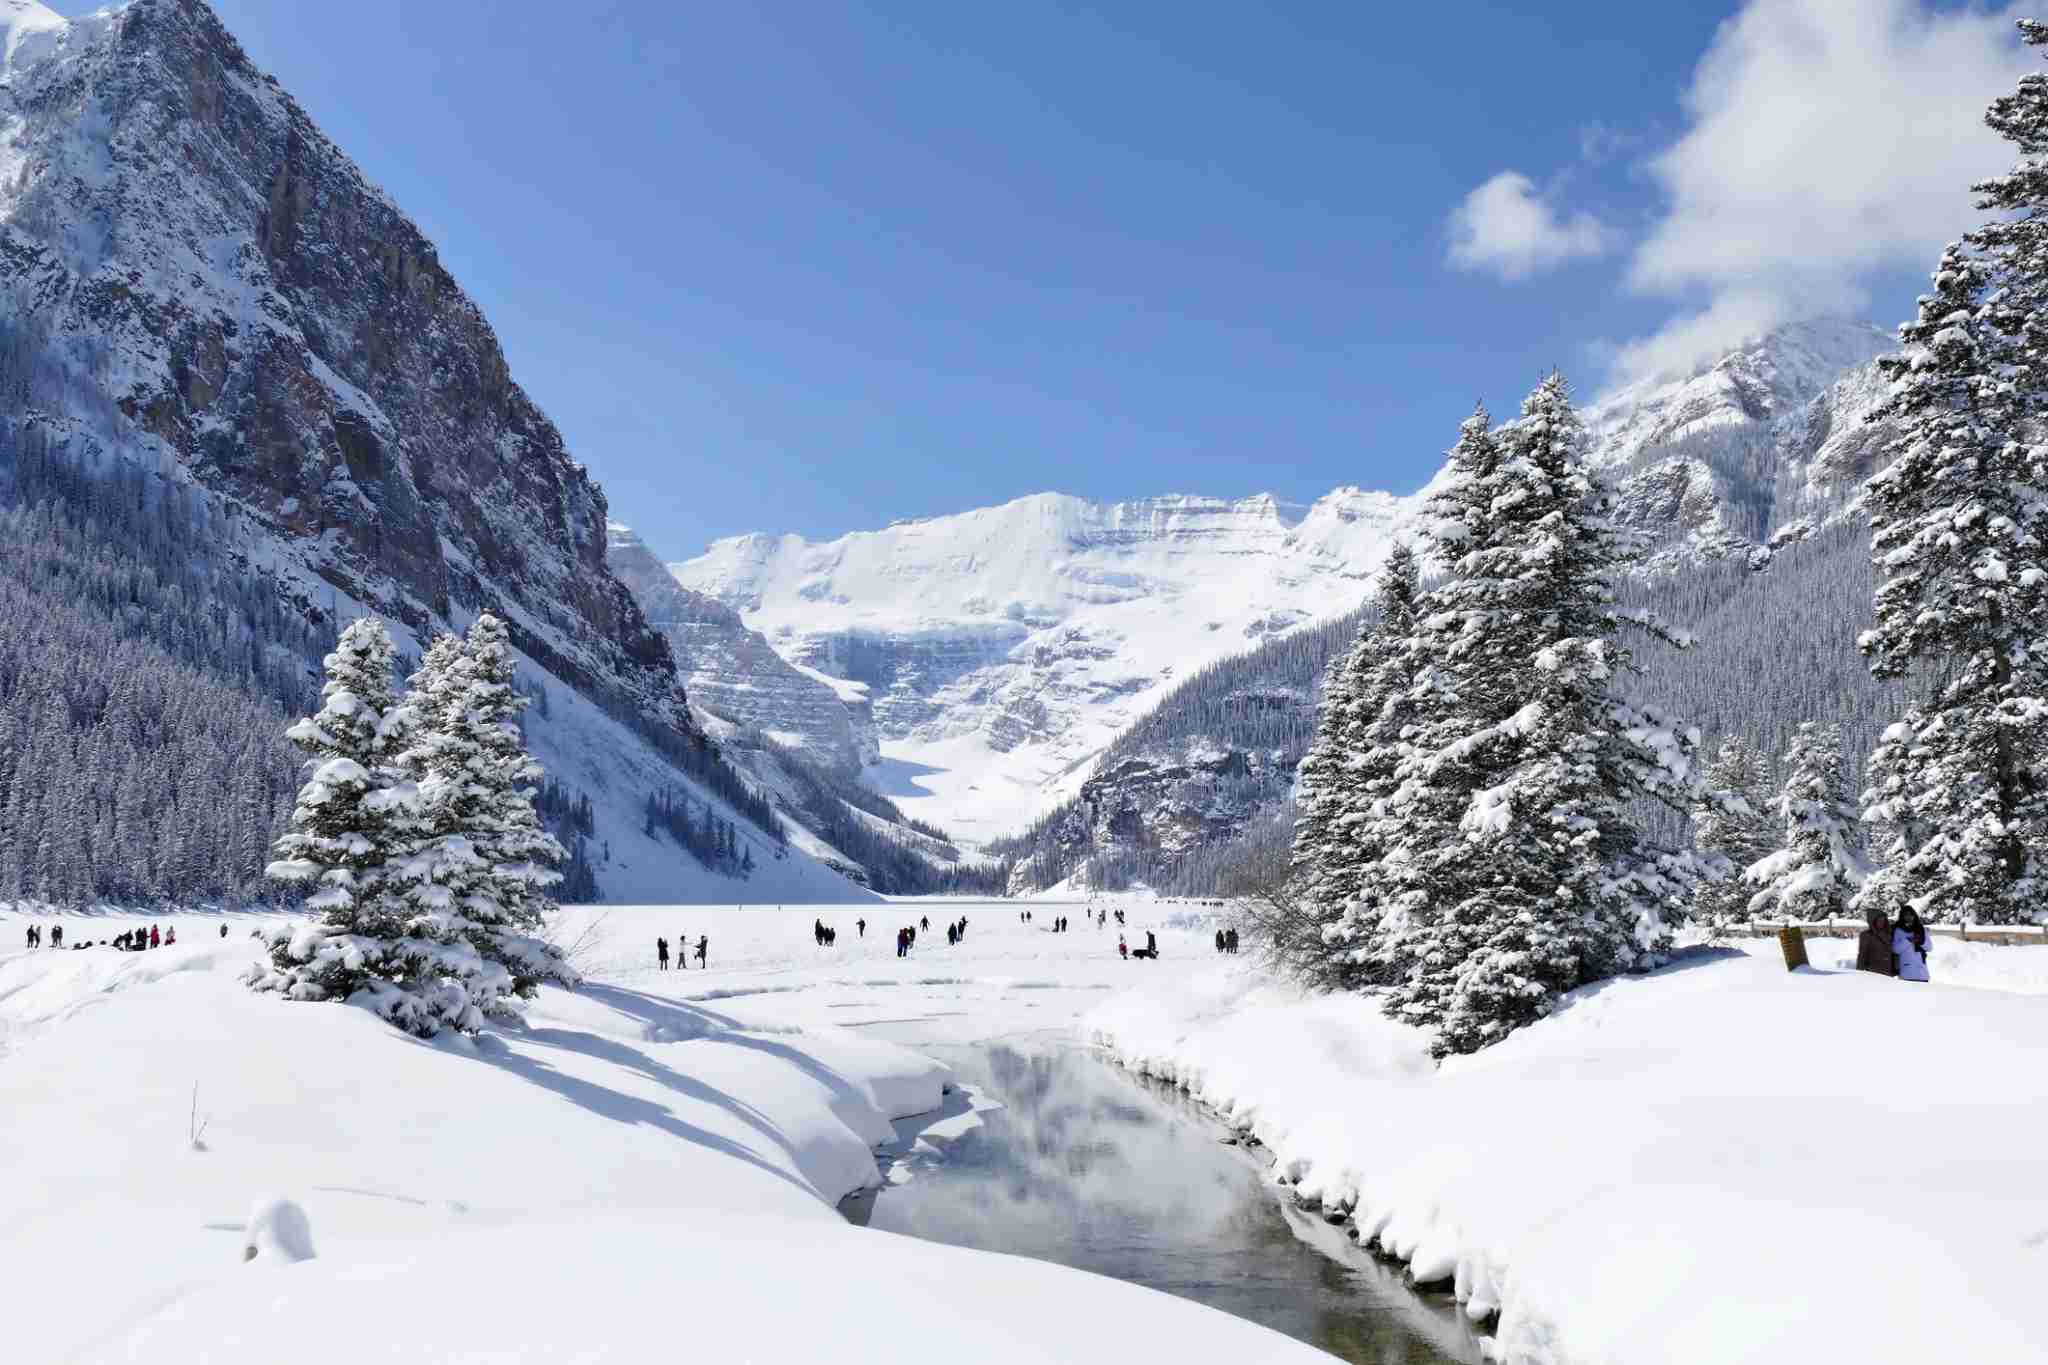 Lake Louise is a glacial lake located in Alberta Canada which freezes over completely every winter. (Photo by Piero Damiani/Getty Images)